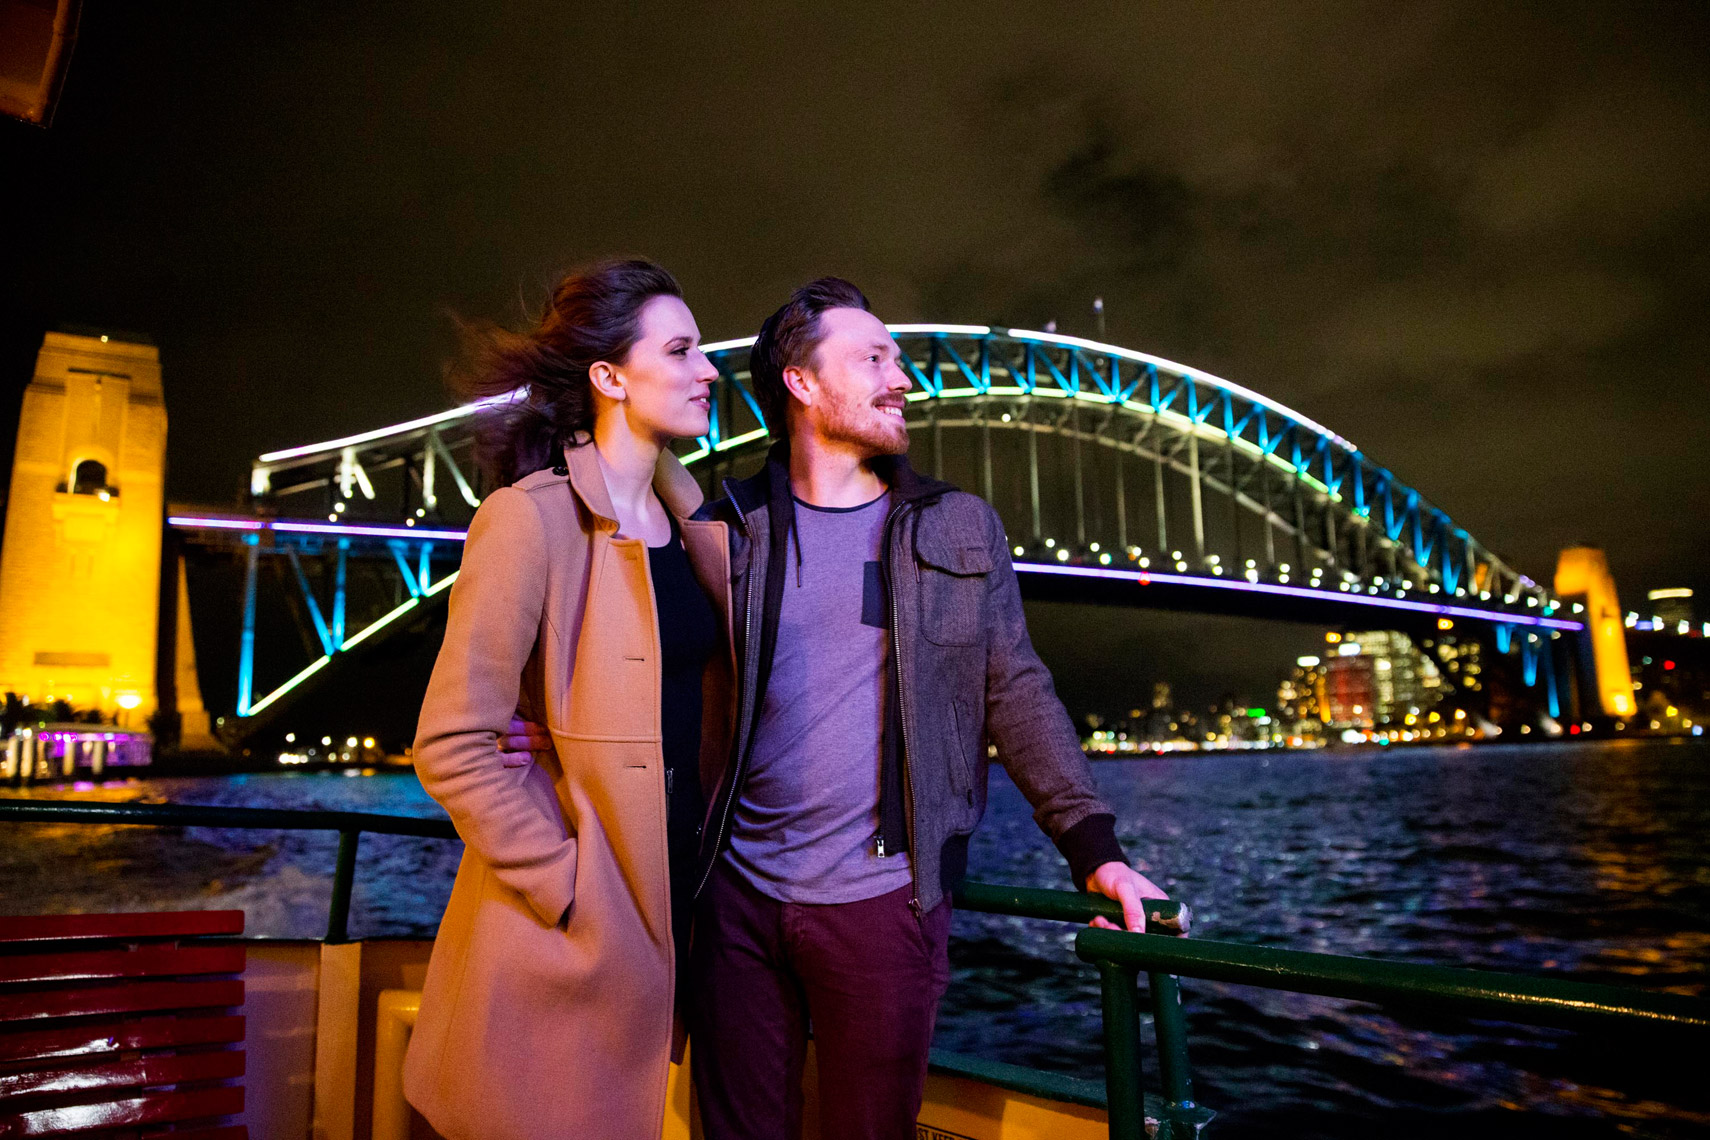 Vivid-Sydney-2014_On-The-Ferry_James-Horan_DNSW-003